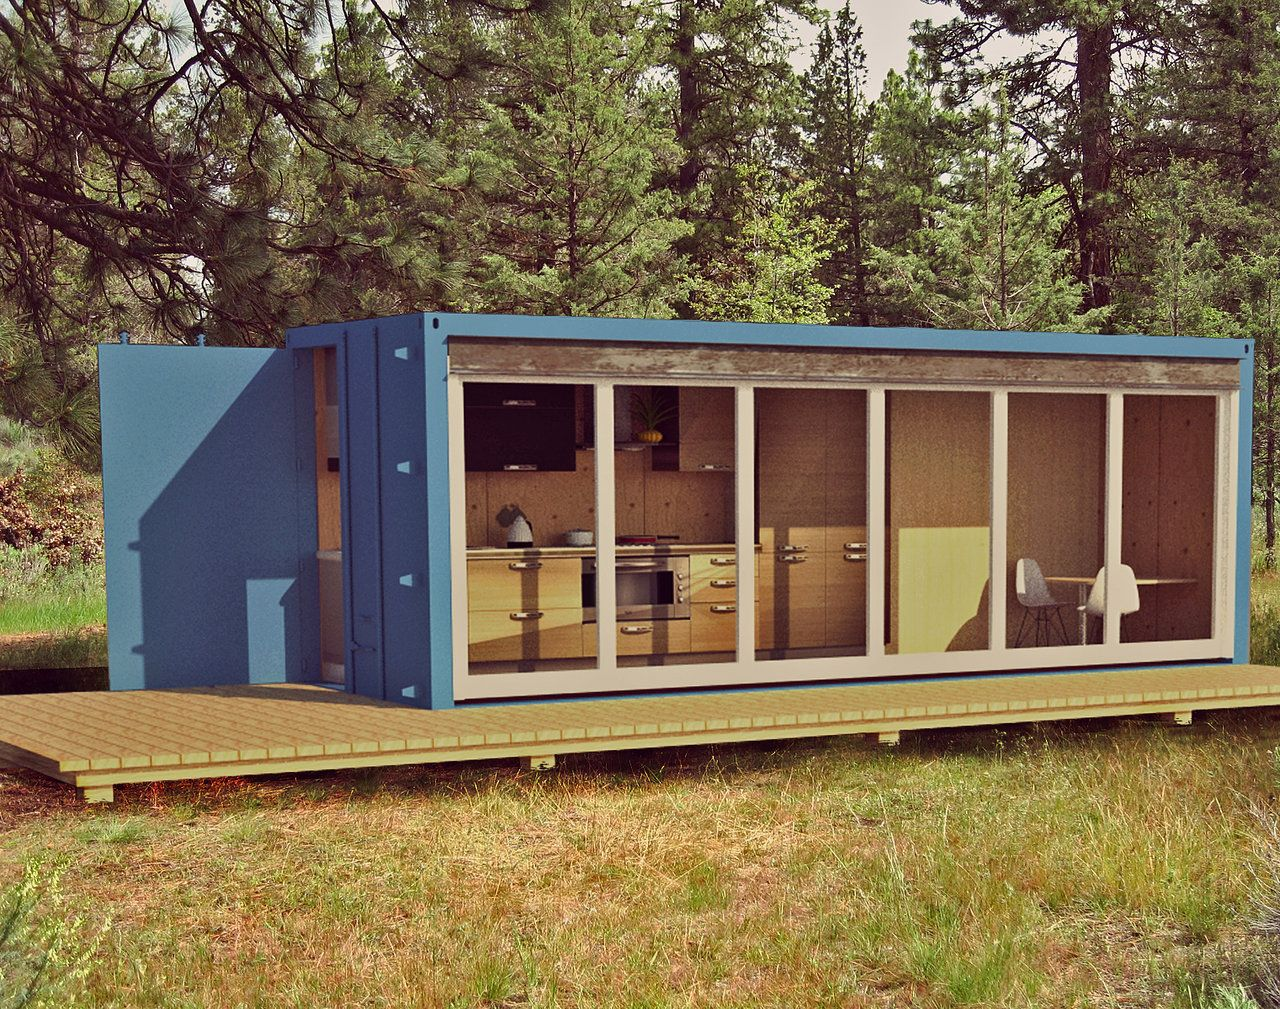 Shipping container cabin 1 alternative green homes pinterest shipping container cabin - Mobile home container ...